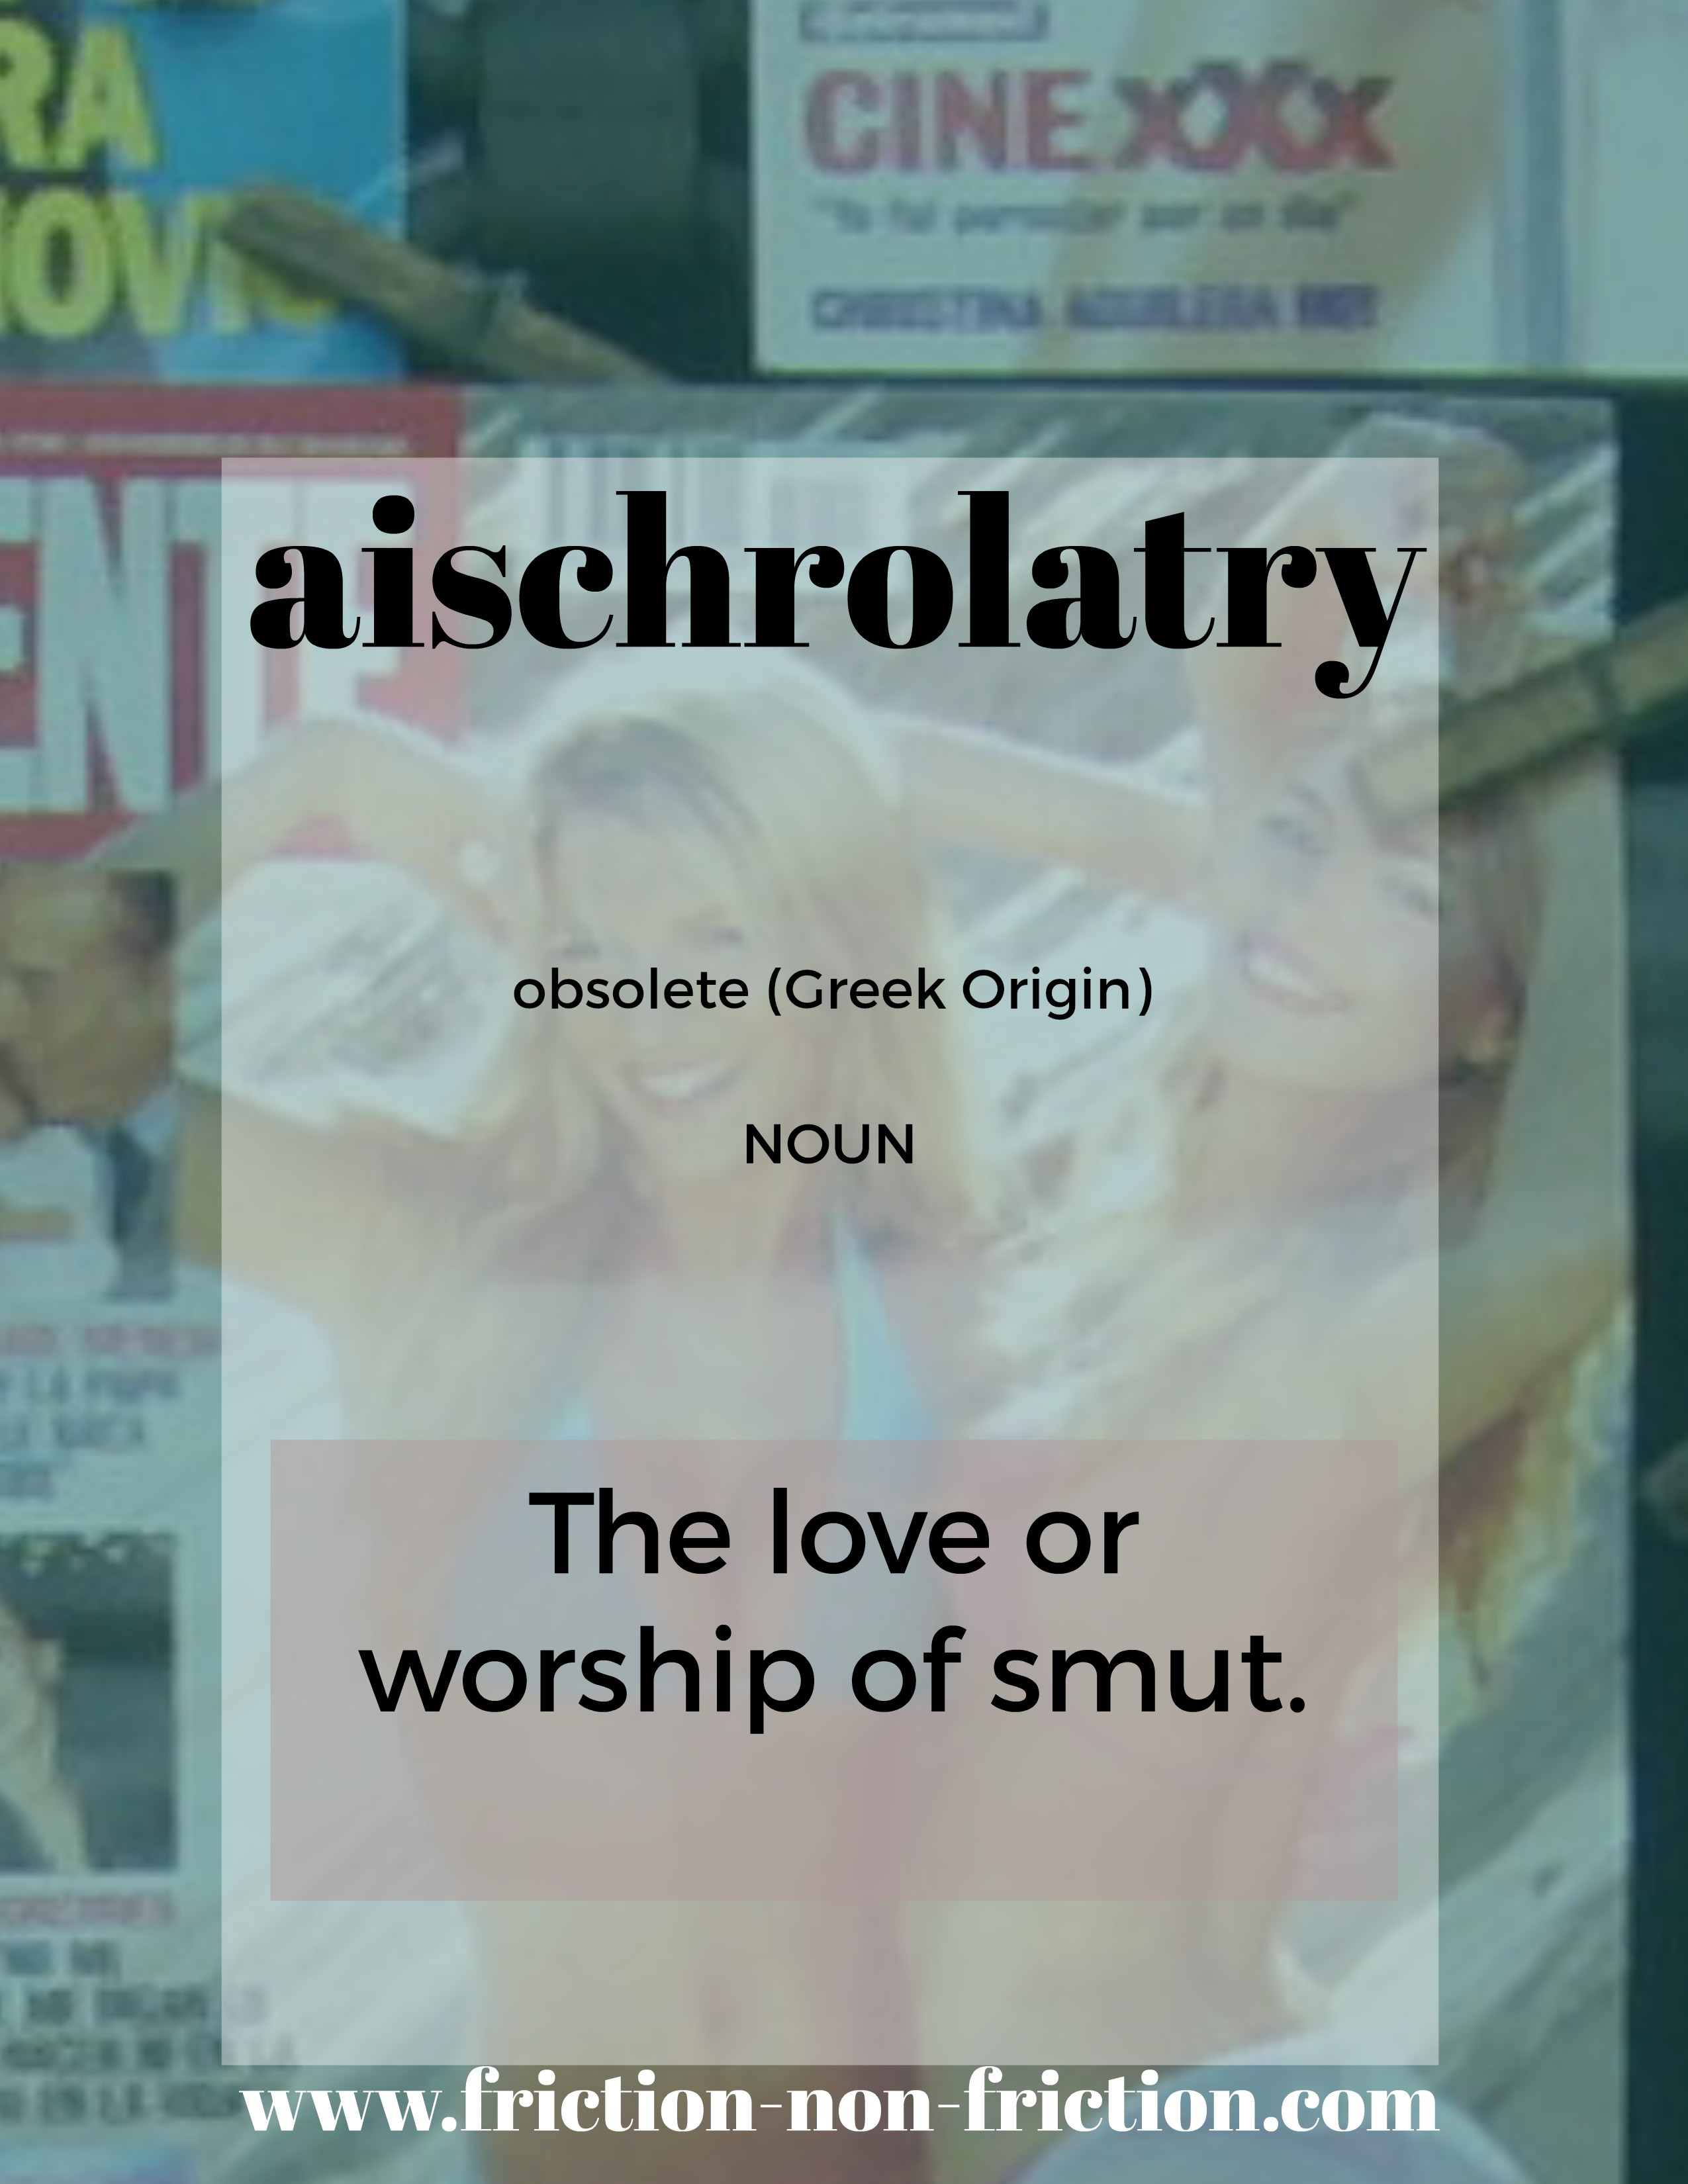 Aischrolatry -- another great FRICTIONARY definition from Friction non Friction